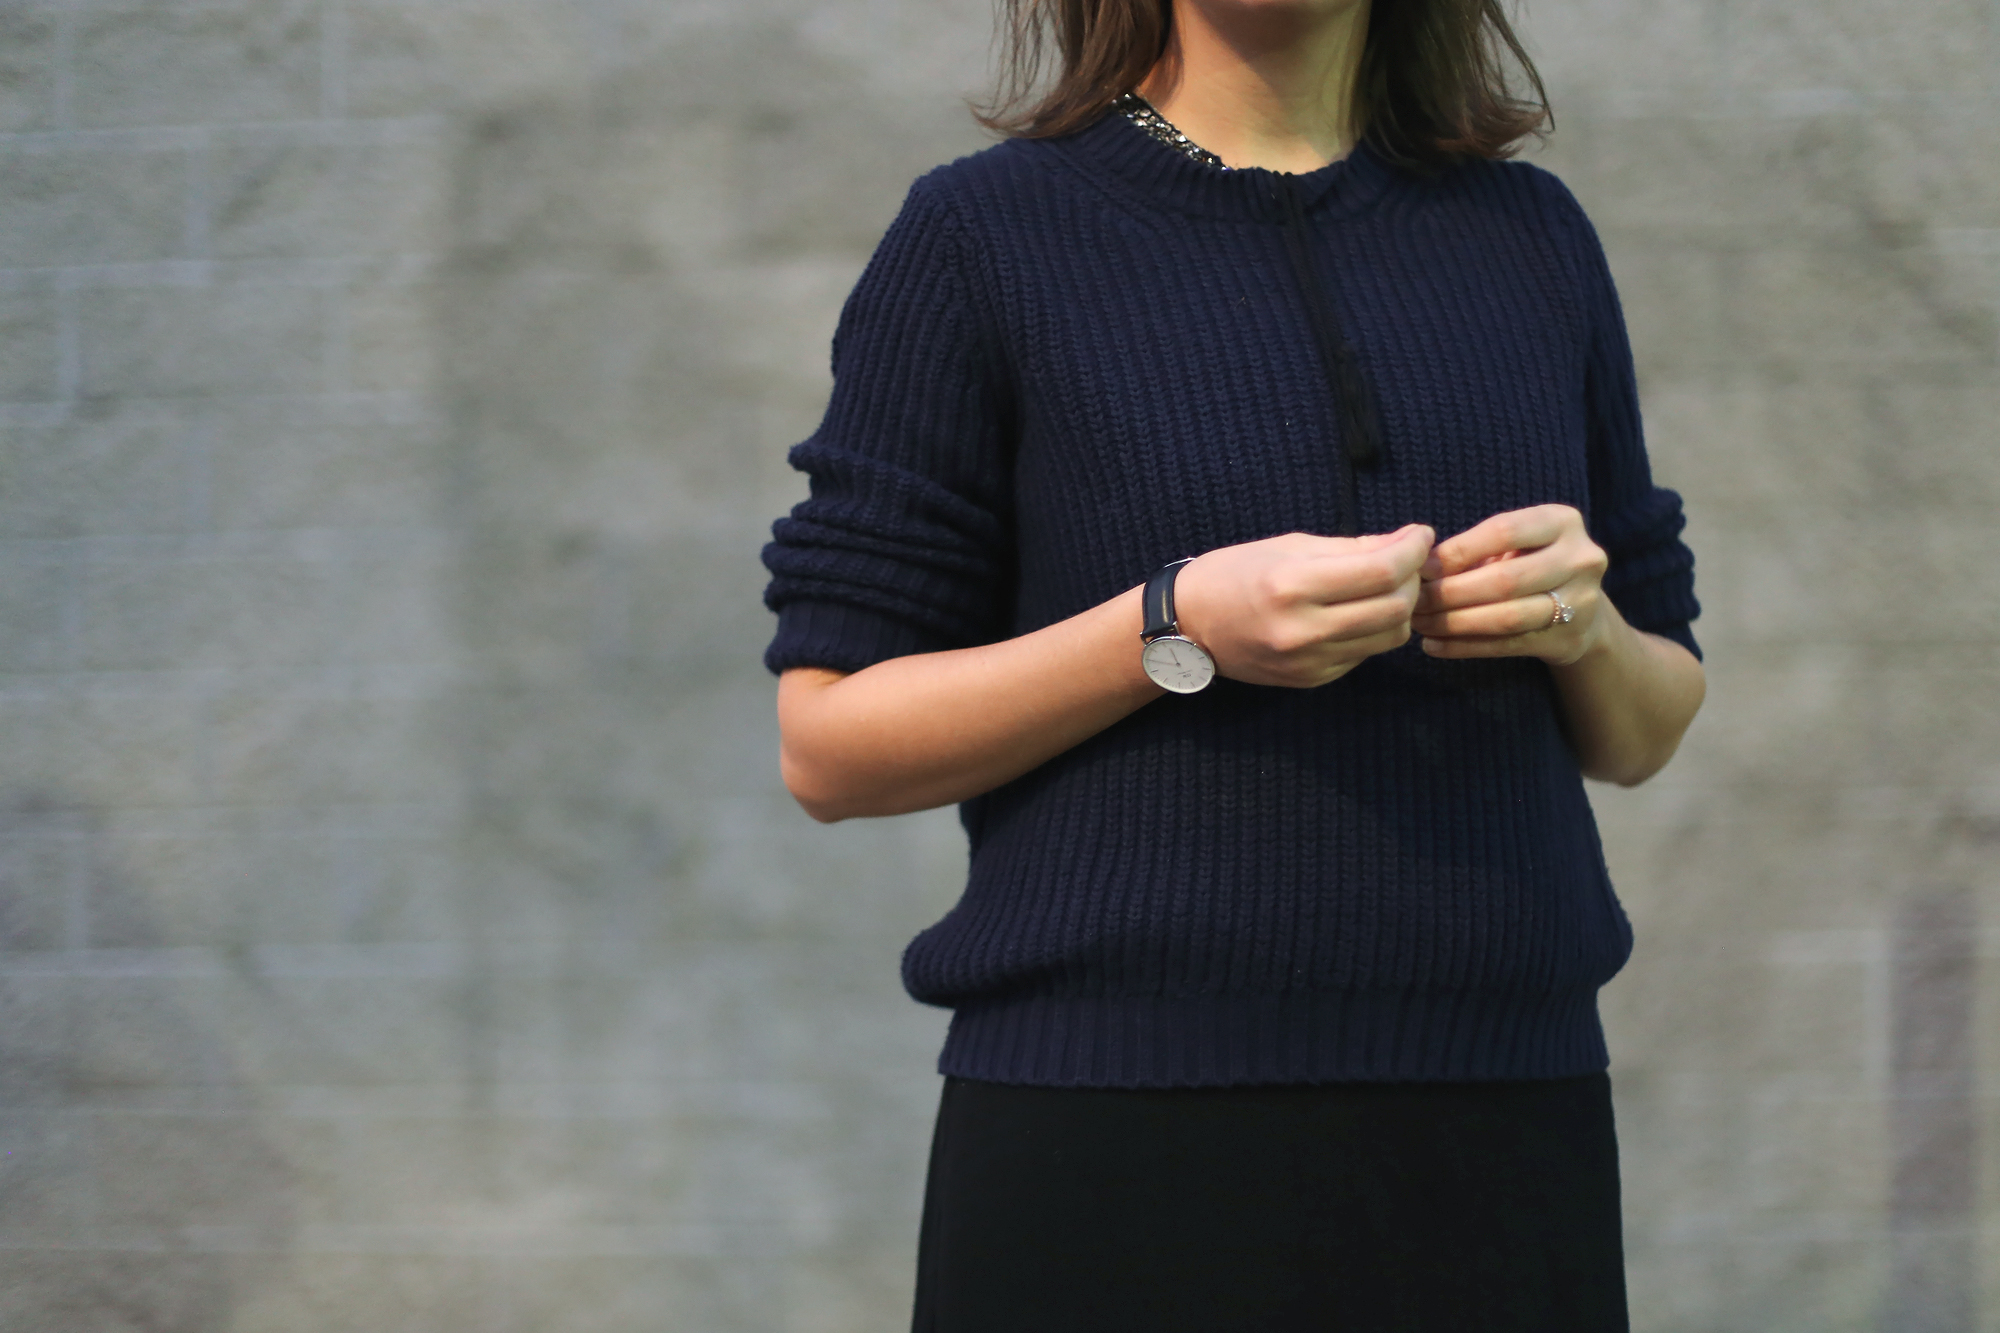 Minimalist street style accessories and some fall fashion.